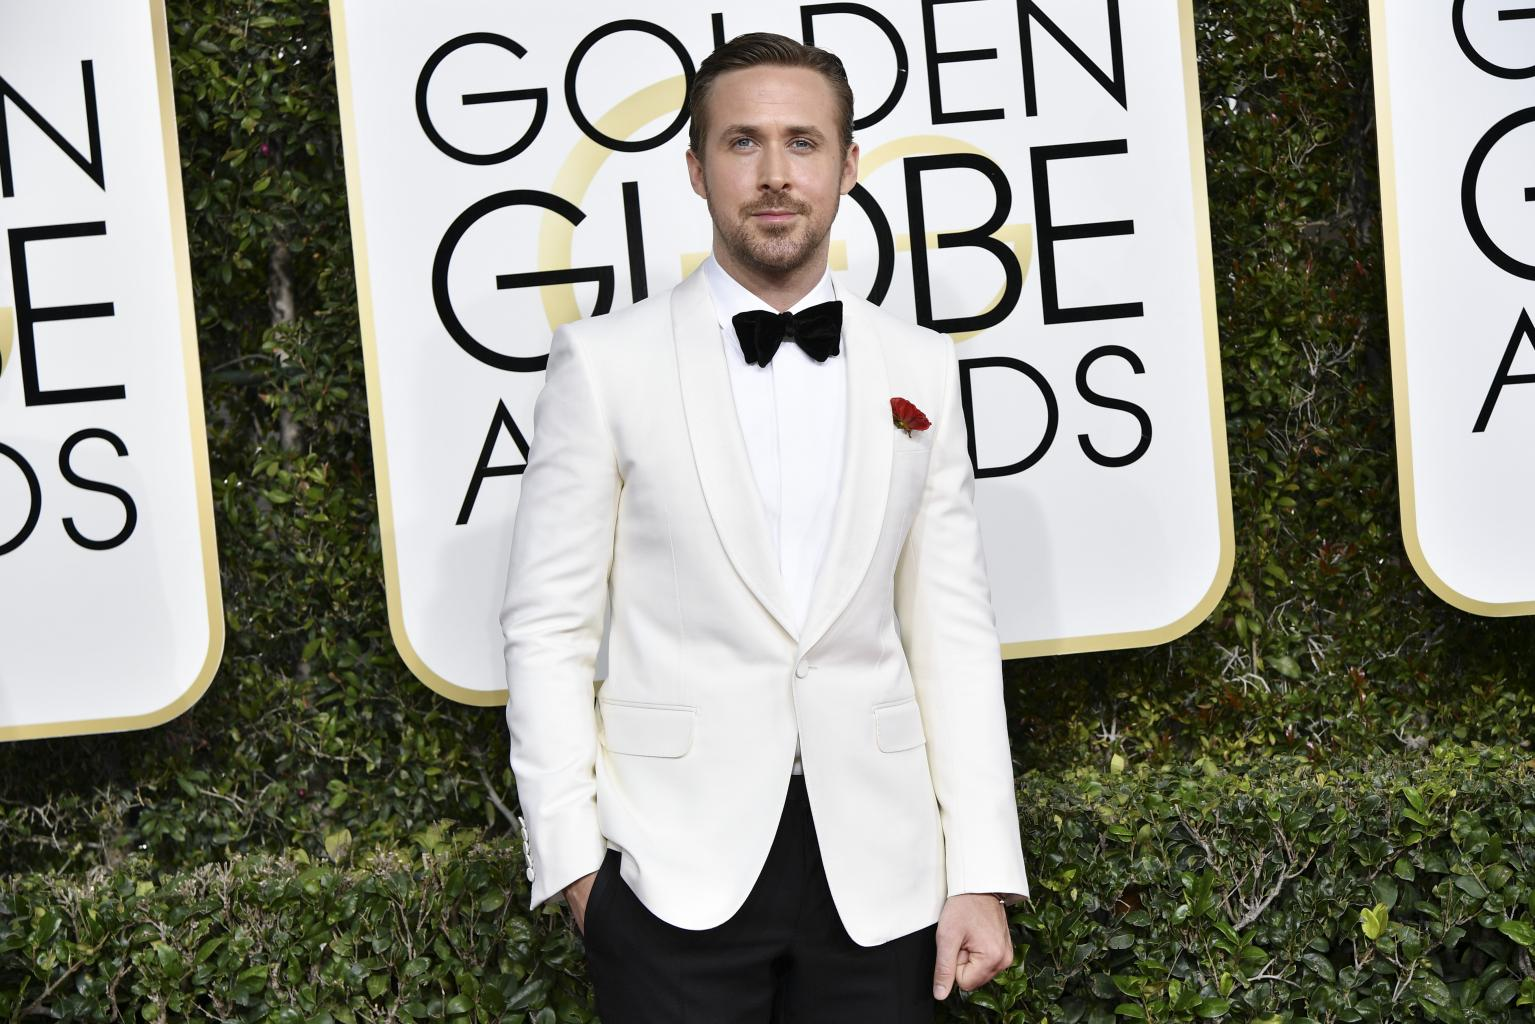 Ryan Gosling Wins Golden Globe For Best Actor in a Motion Picture Comedy or Musical